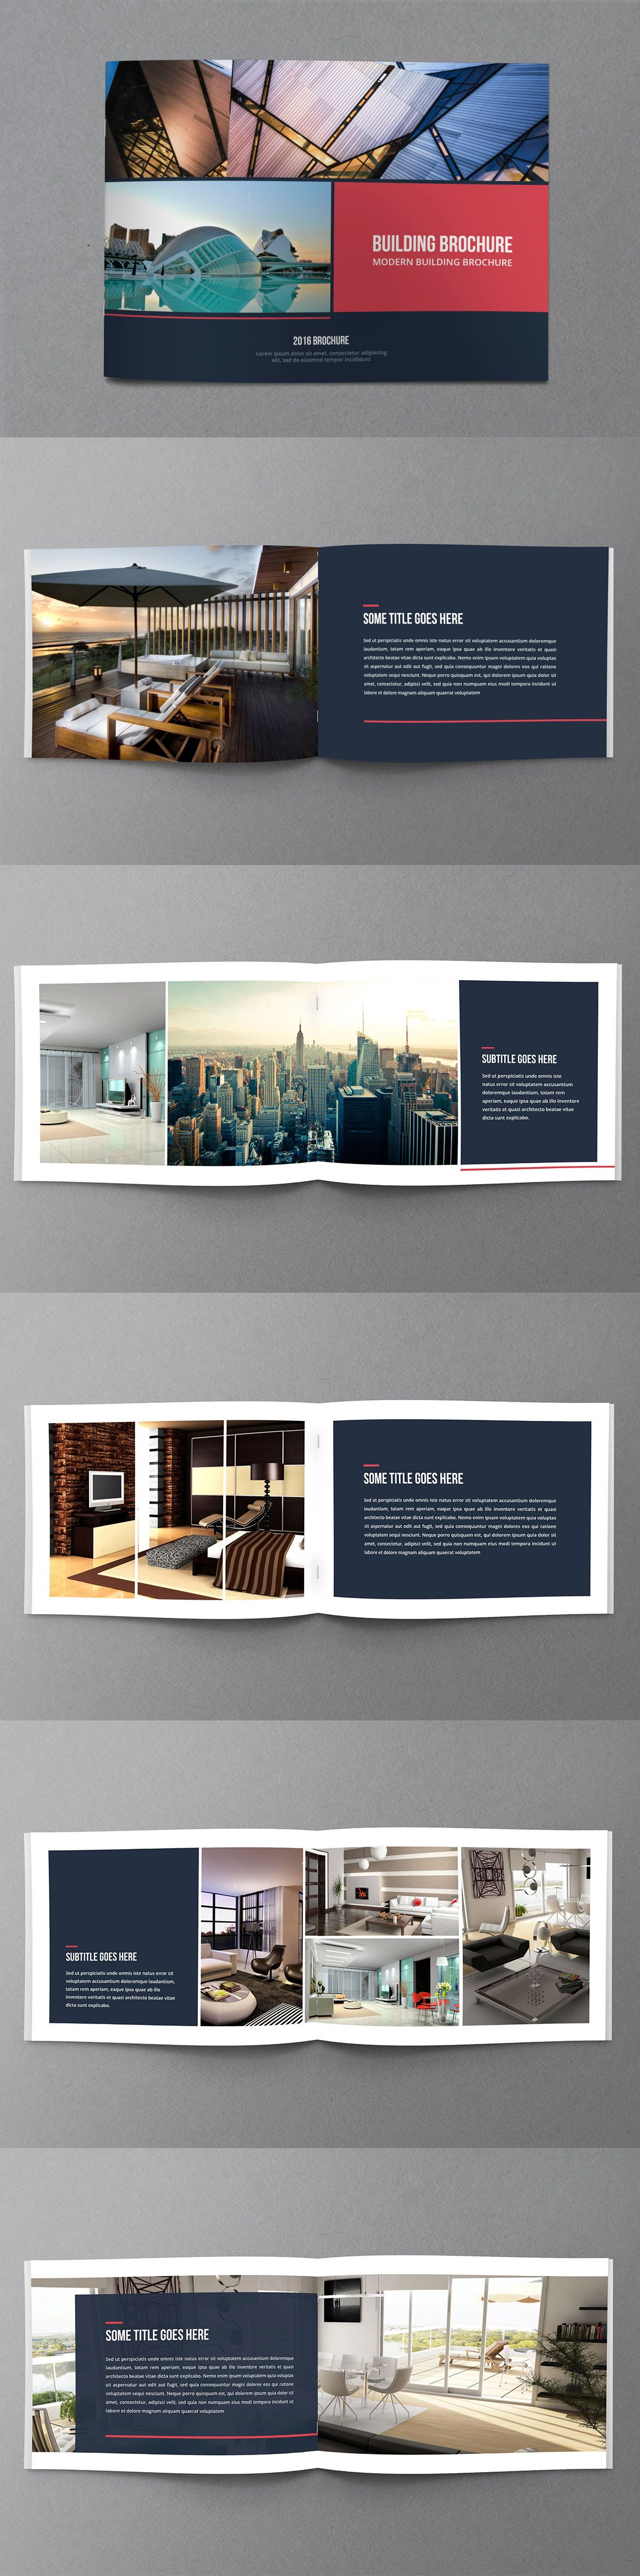 Multipurpose Corporate Brochure Template InDesign INDD | BROCHERS ...